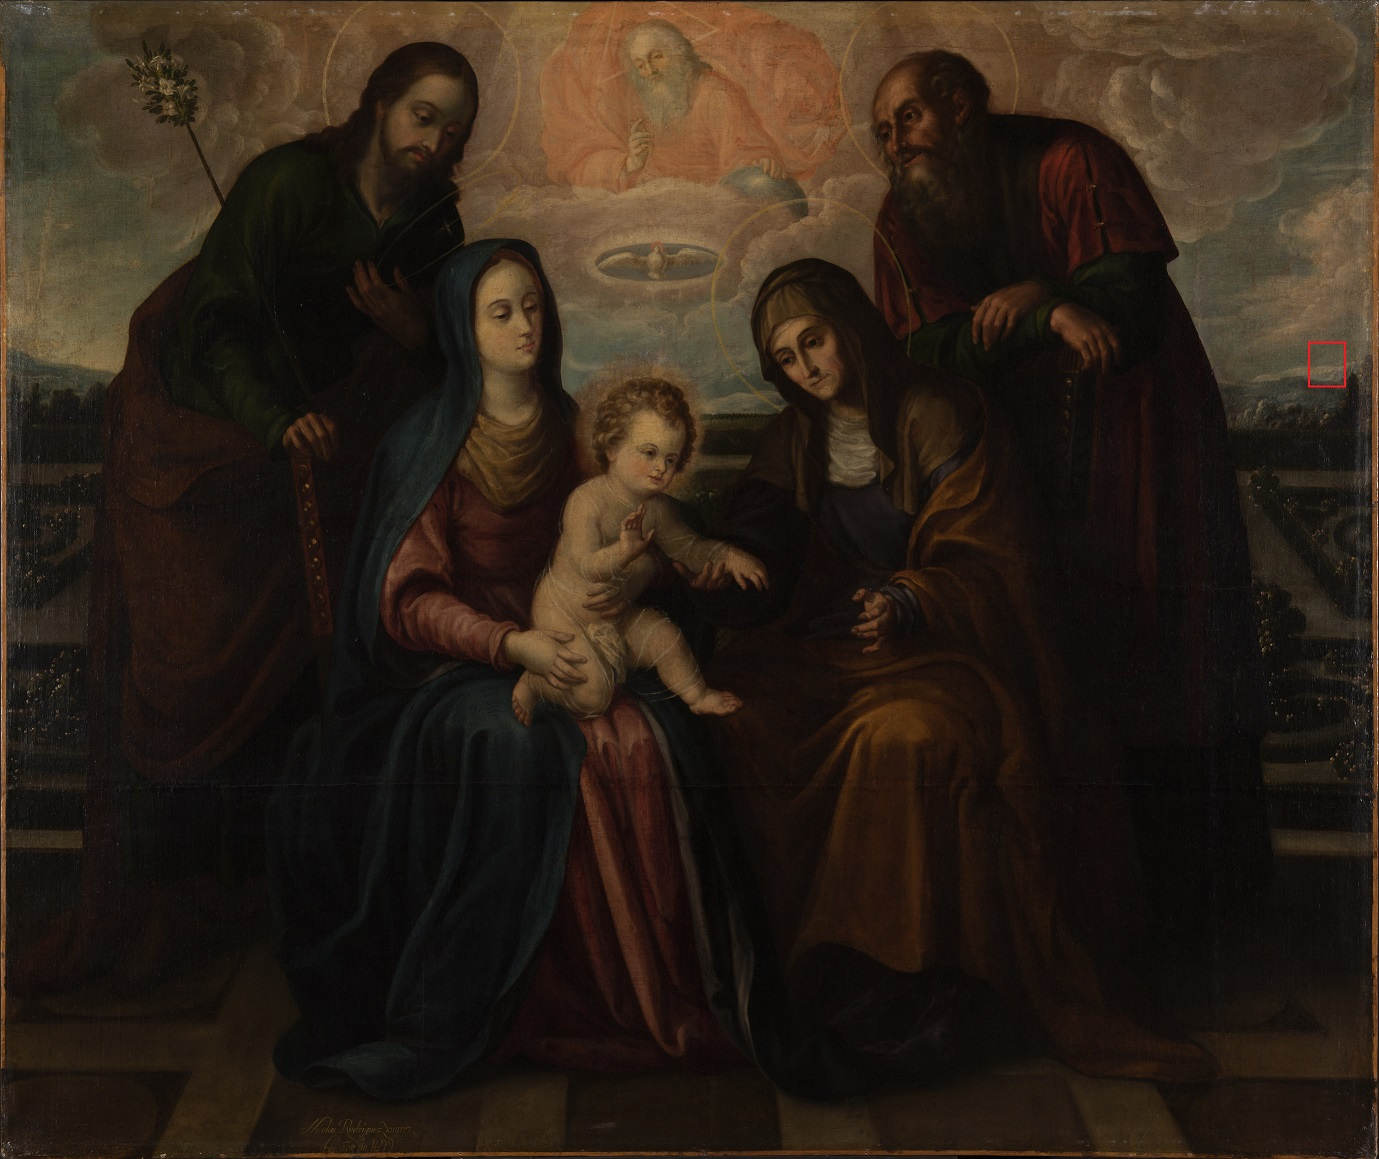 Holy Family with Saints Anne and Joachim by Nicolás Rodríguez Juarez at THe Ringling